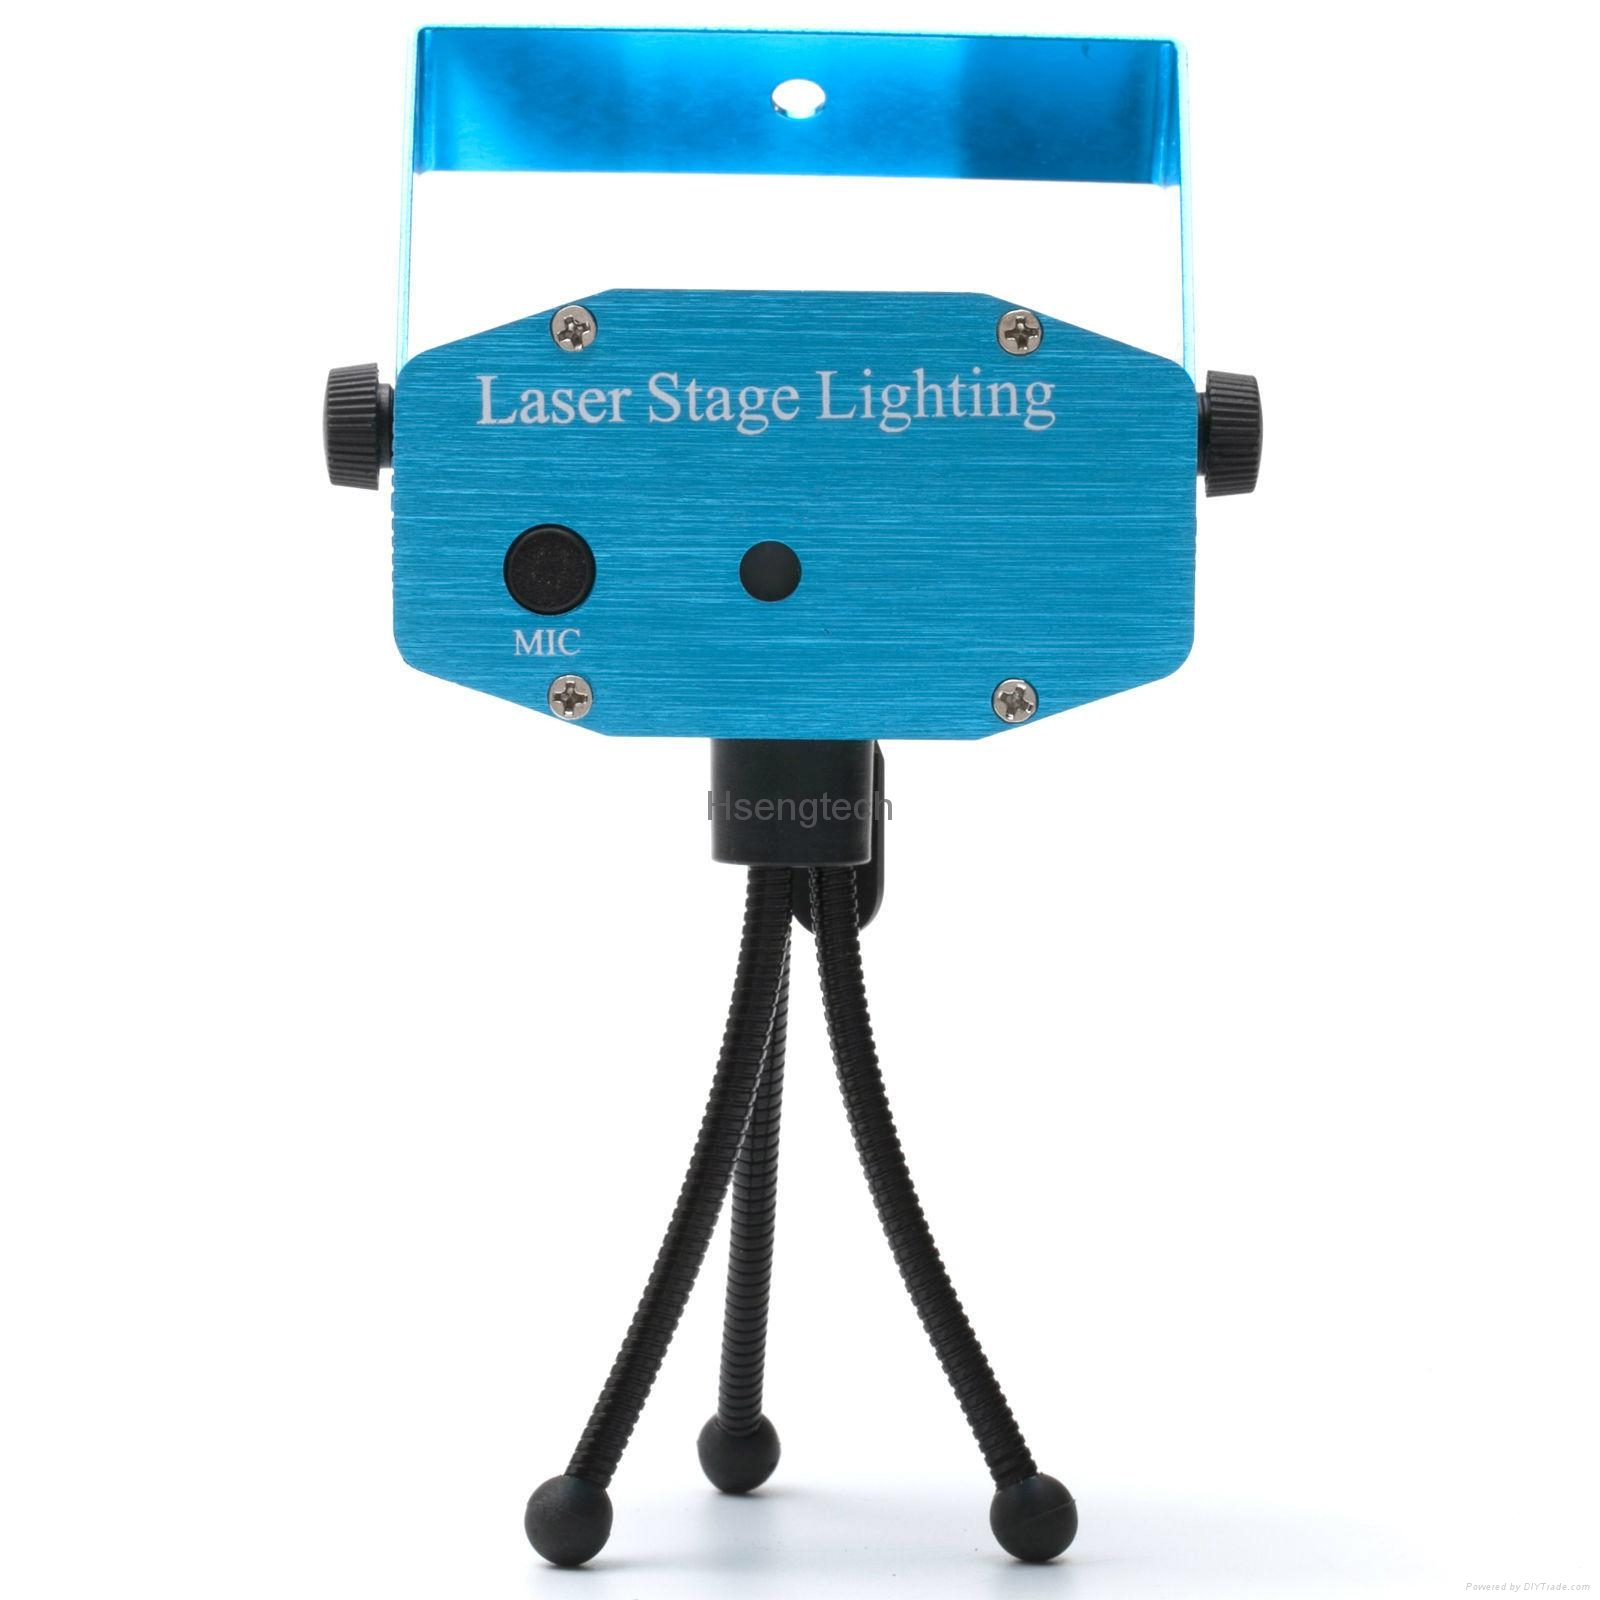 MINI Laser Stage Lighting Projector with MP3 Music Voice Control Remote Control 16